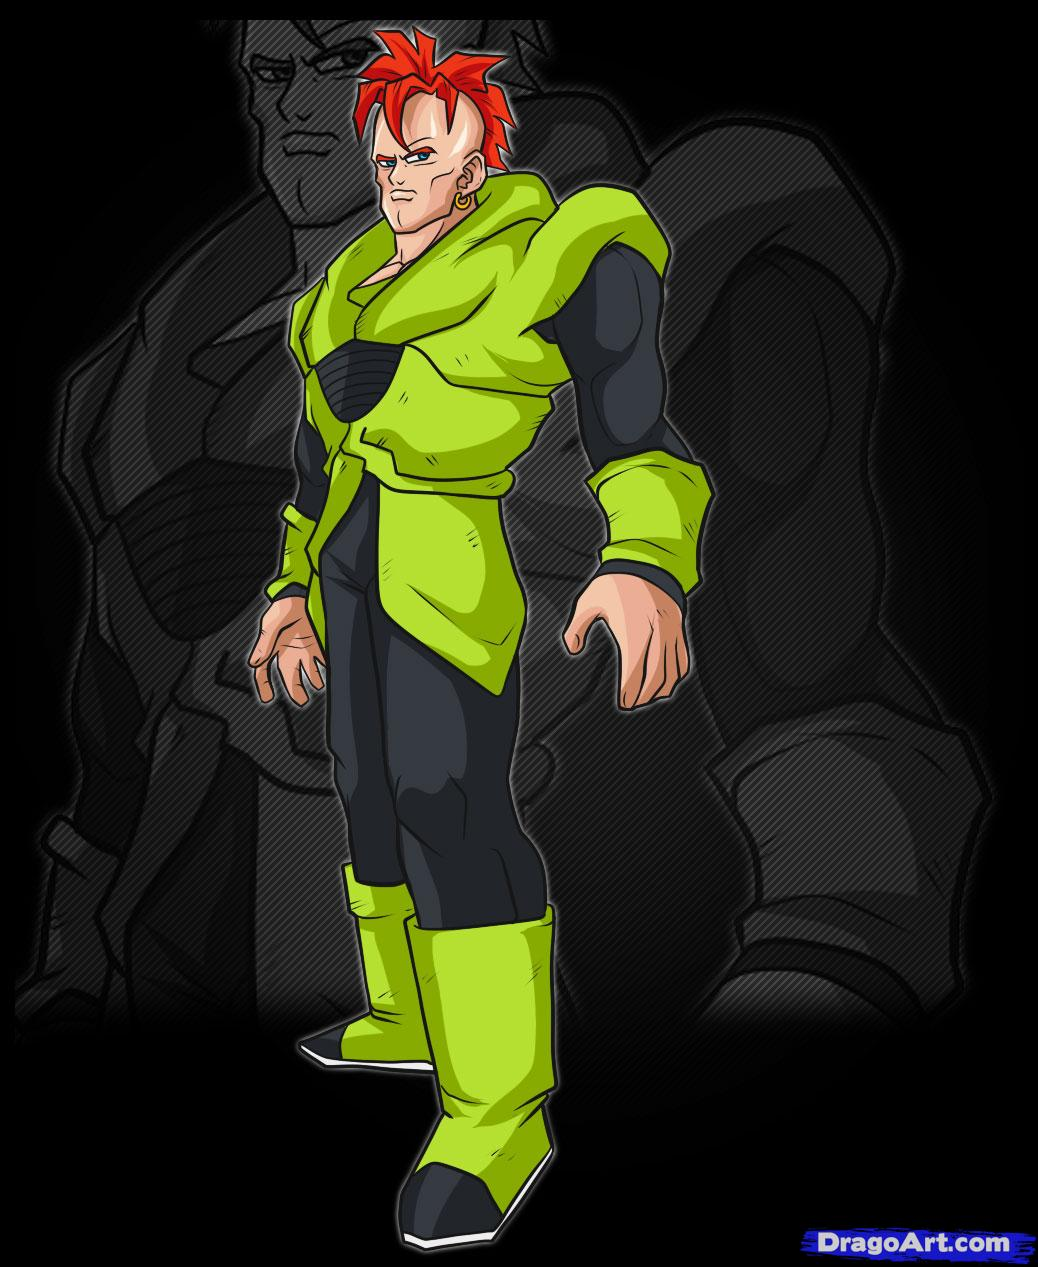 Dragon Ball Characters: Android #16 Dragonball Dbz Gt